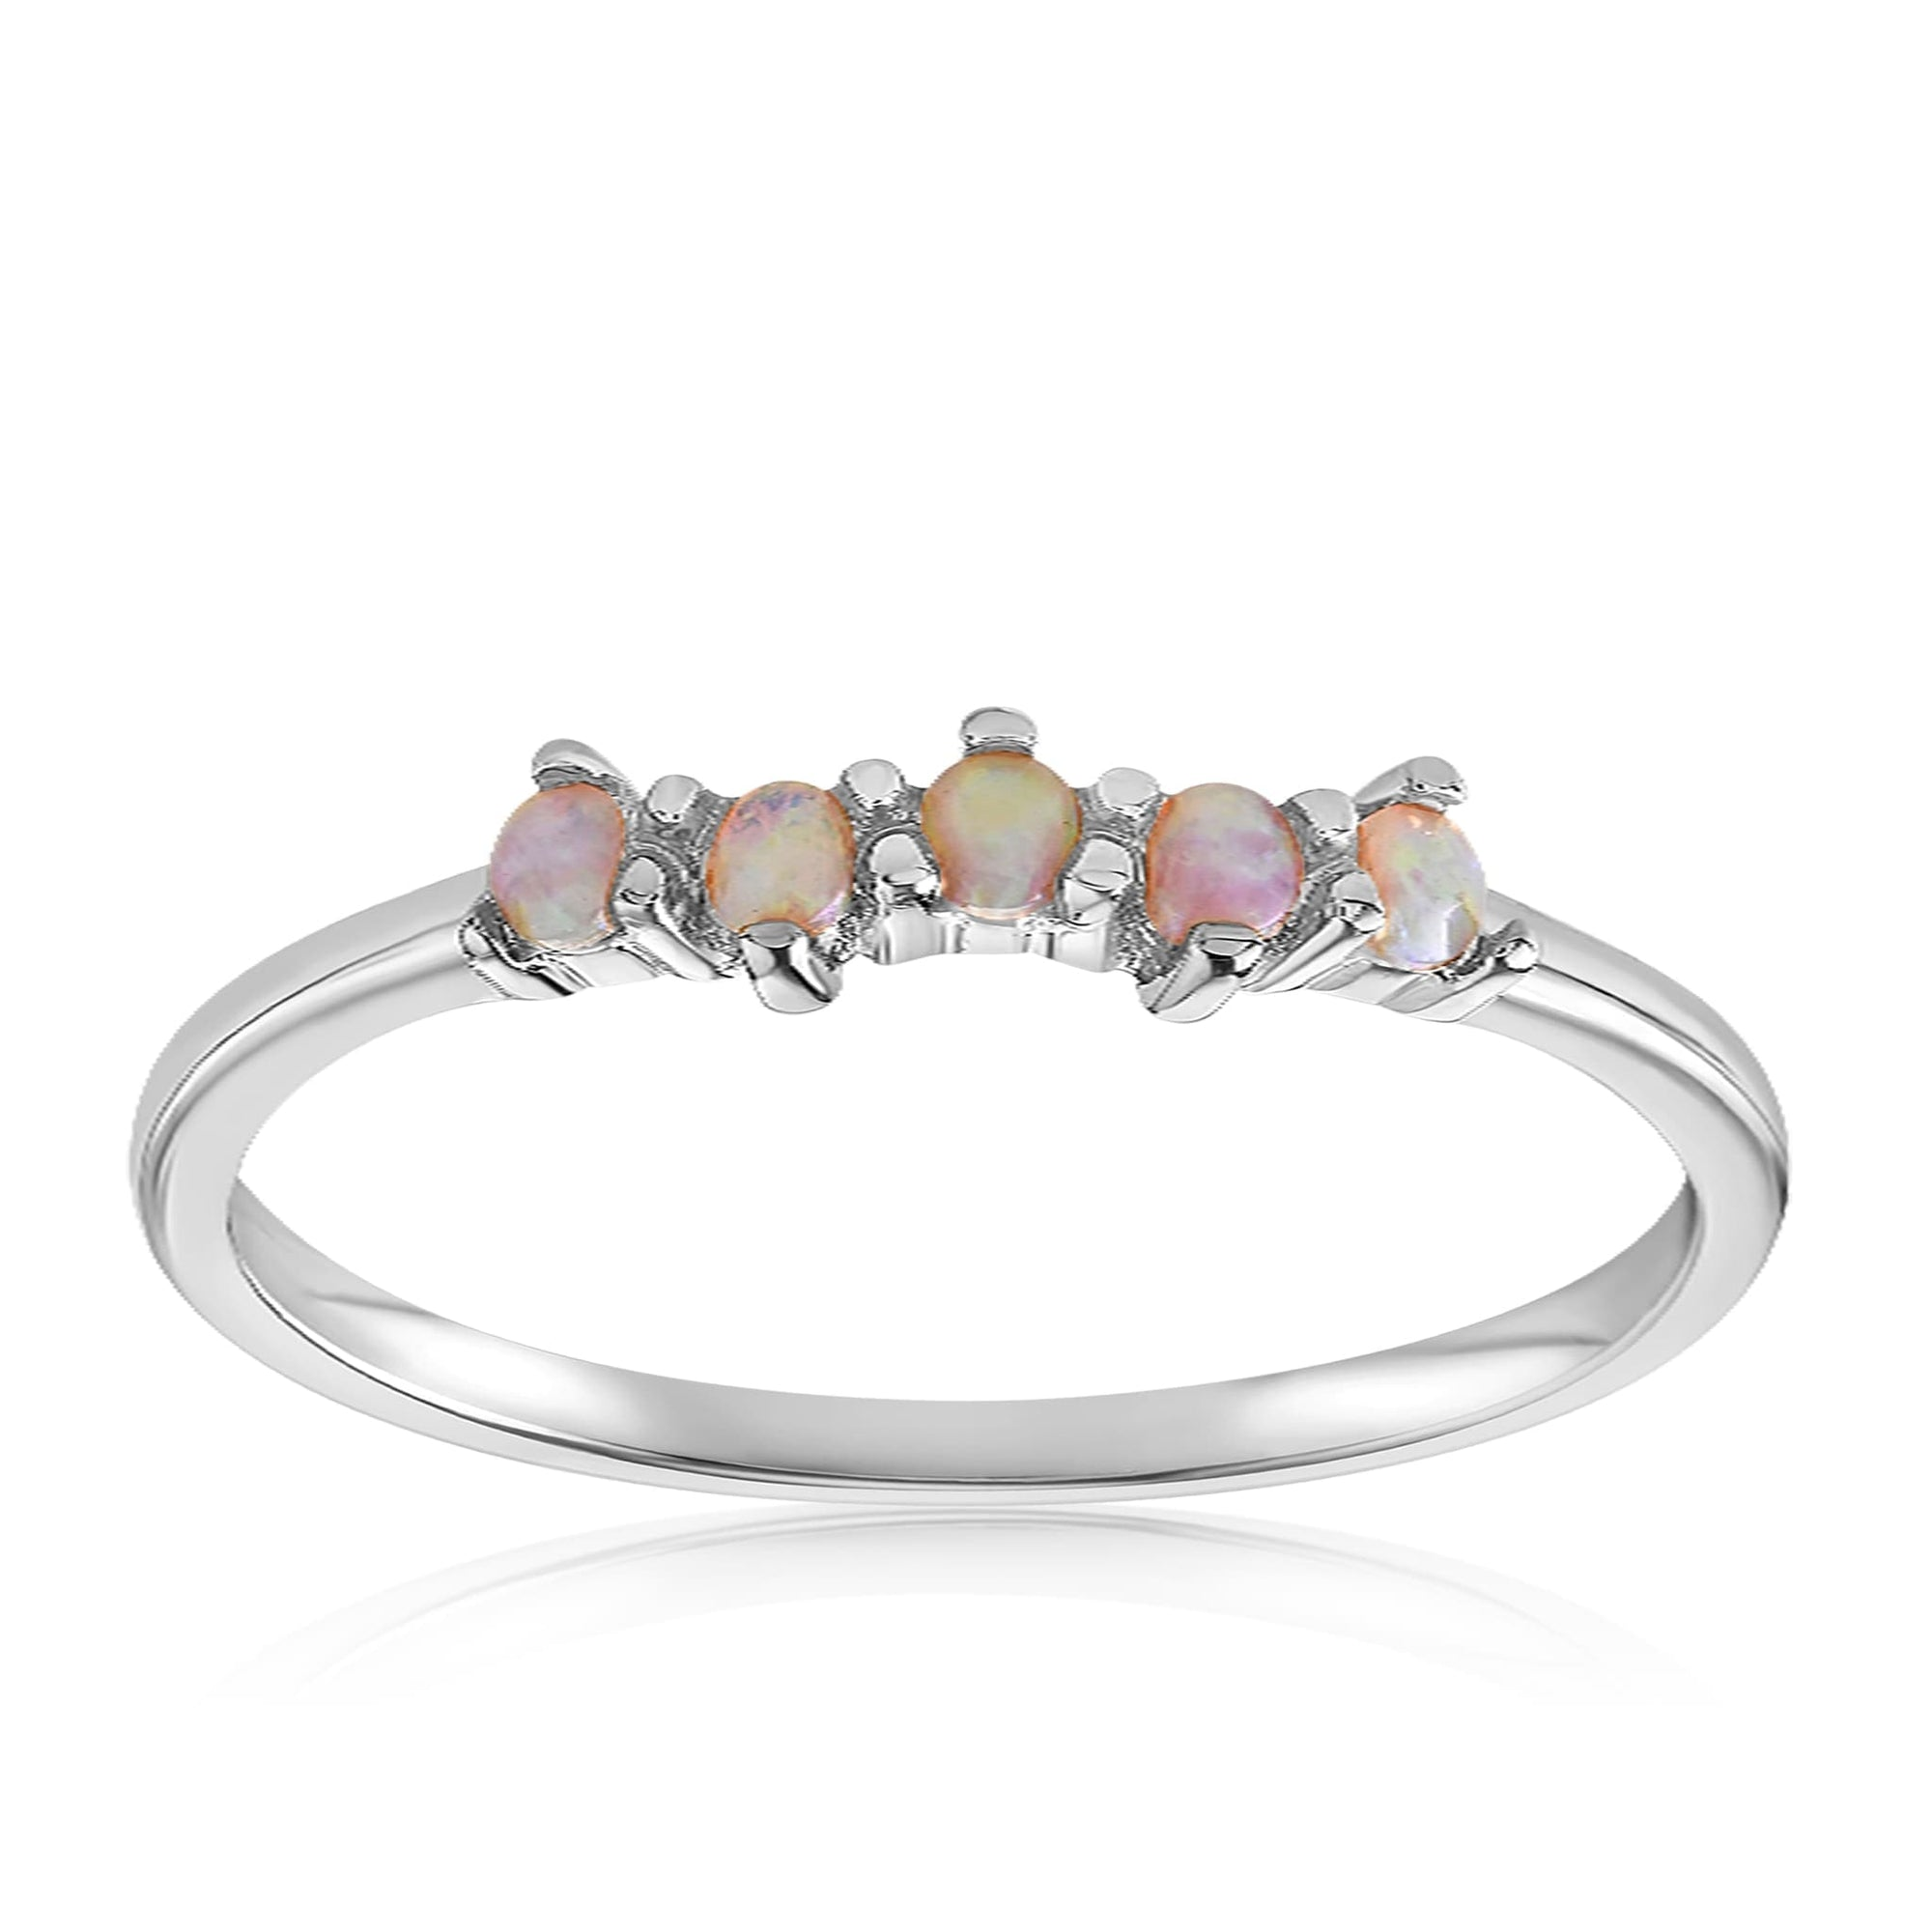 Samantha Simple Dots 5 Opal Ring - Front View Facing Up - 925 Sterling Silver